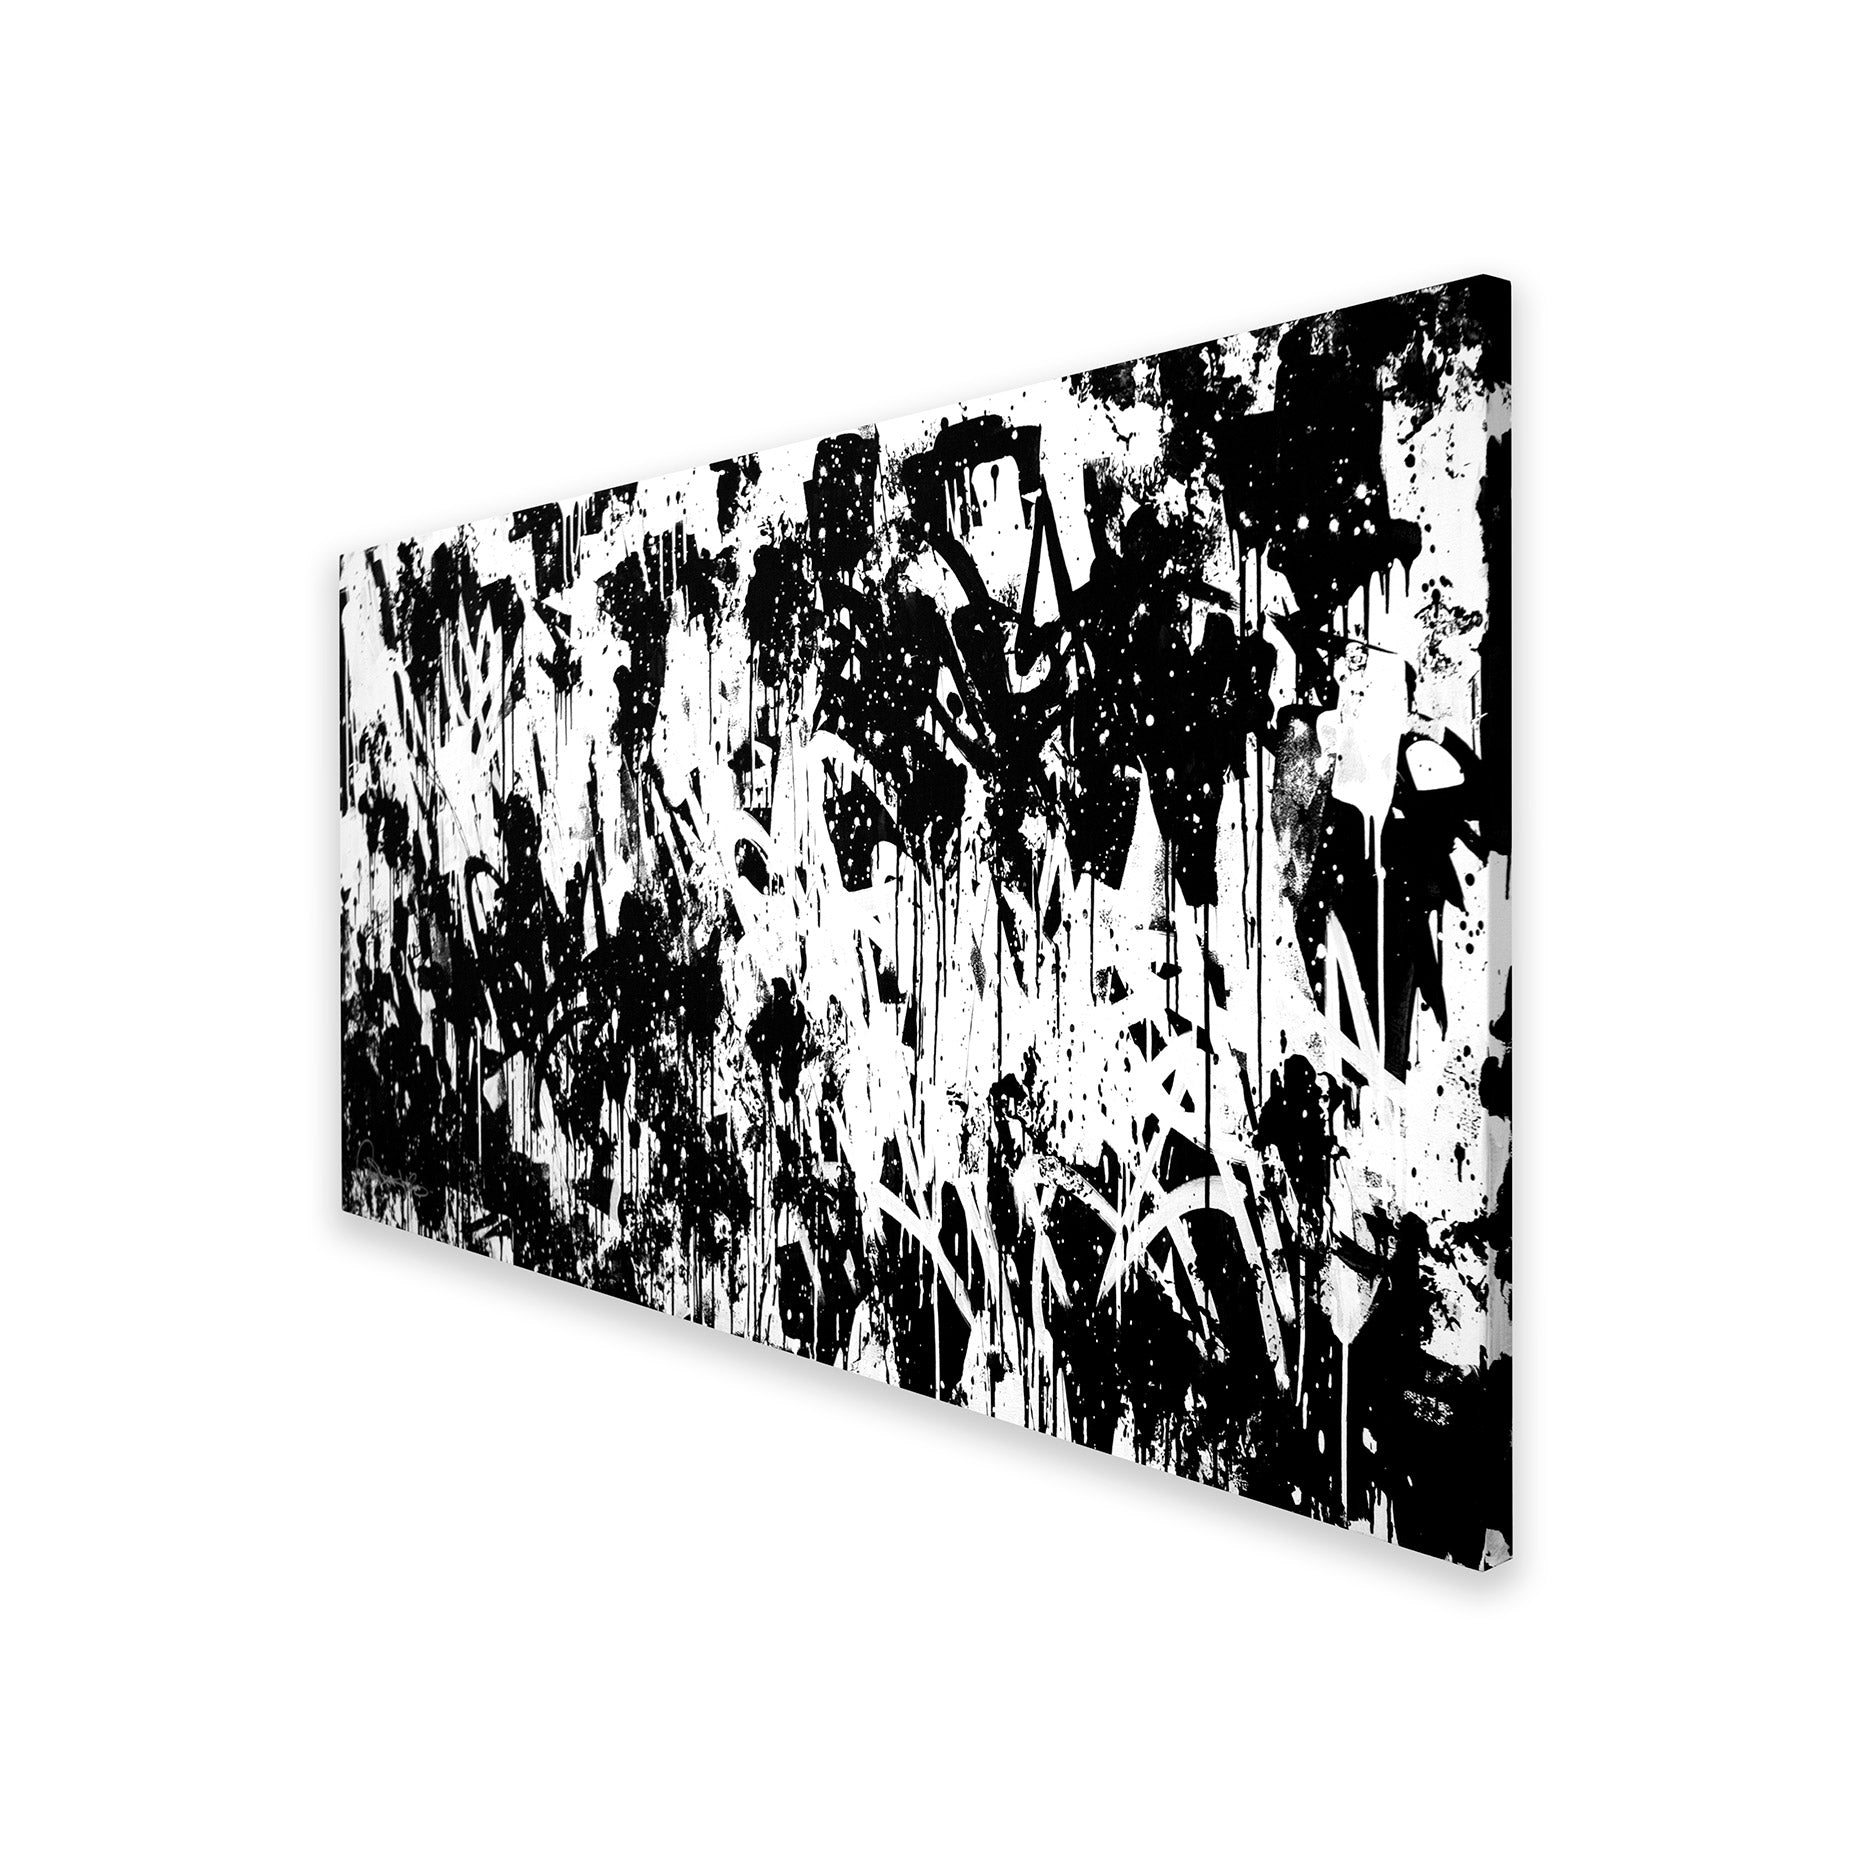 PEACE IN THE CHAOS - 90x200 - Bisco Smith